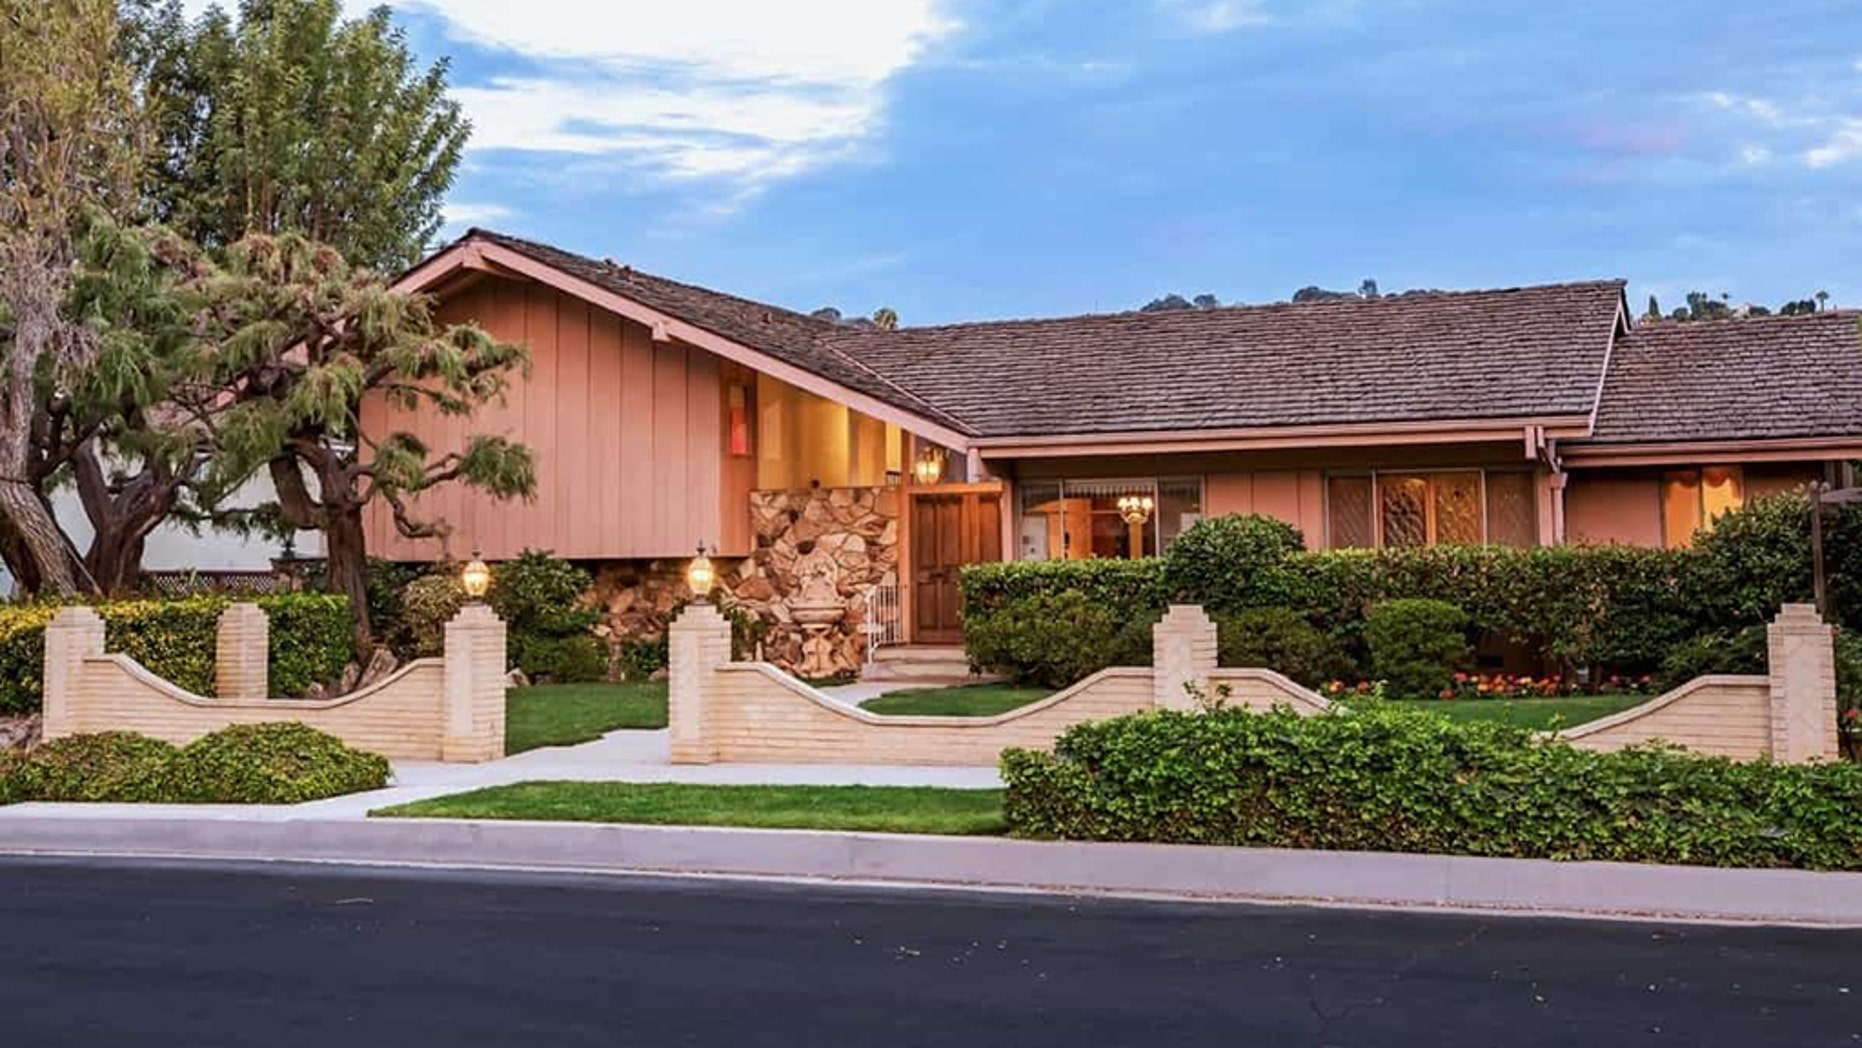 """With the exception of a few updates and a gate surrounding the property, the home looks largely the same as """"Brady Bunch"""" fans recall.  (Anthony Barcelo/Carswell and Partners)"""